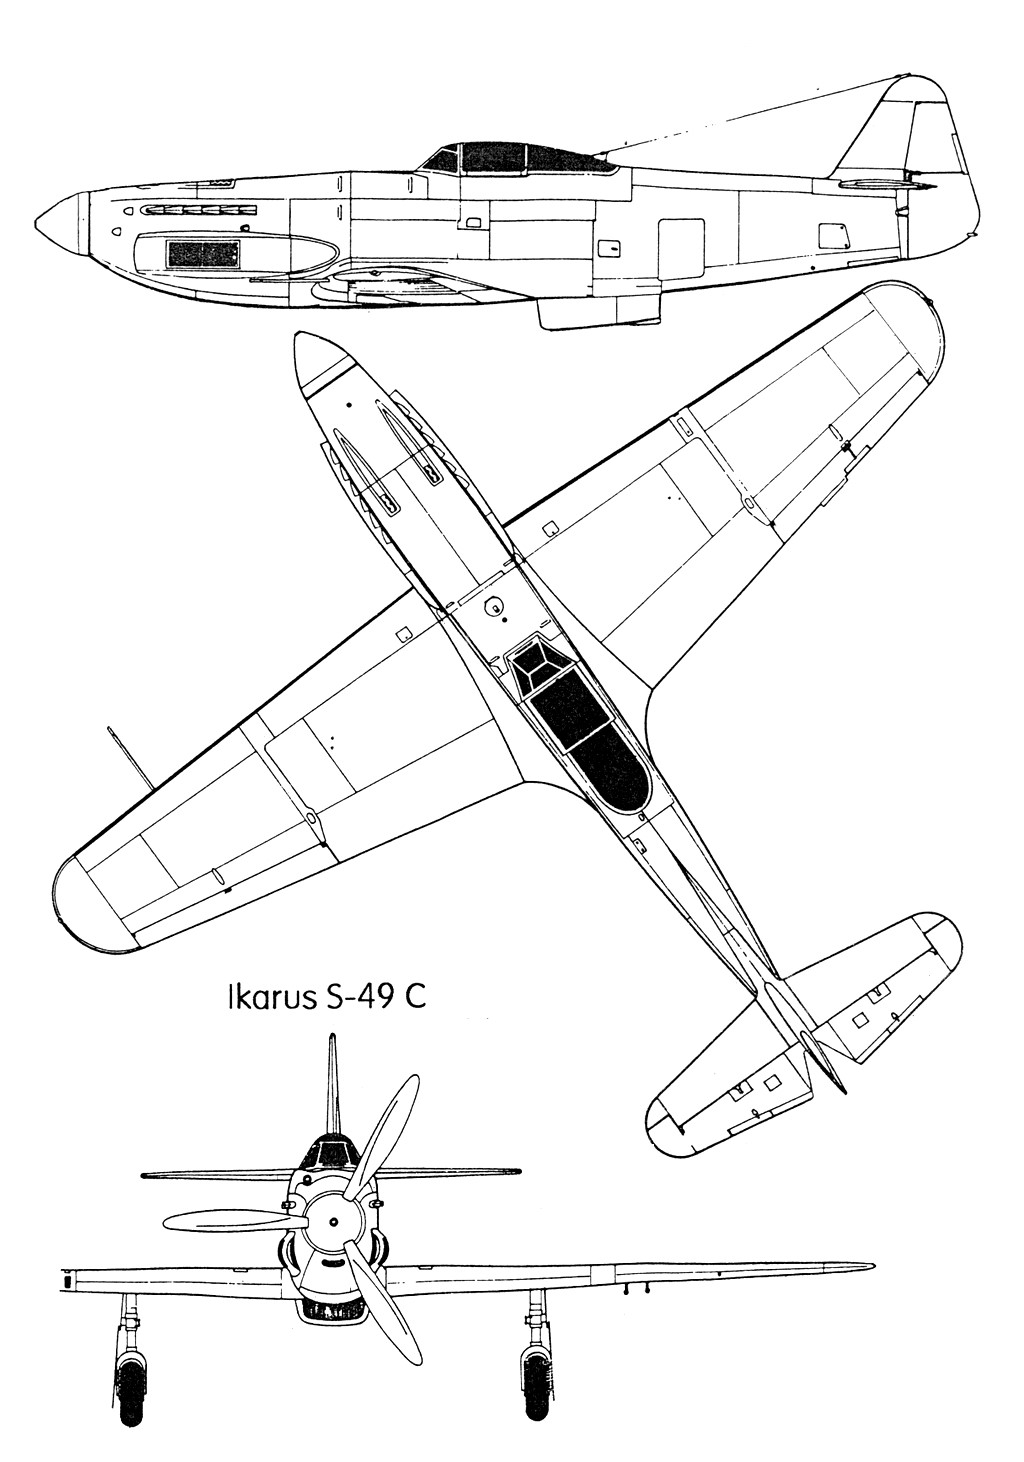 weapons and warfare history and hardware of warfare page 11 Interior 1955 Hudson the first postwar fighter to be designed in yugoslavia the s 49 was a development of the prewar ikarus ik 3 production of which had been halted by the